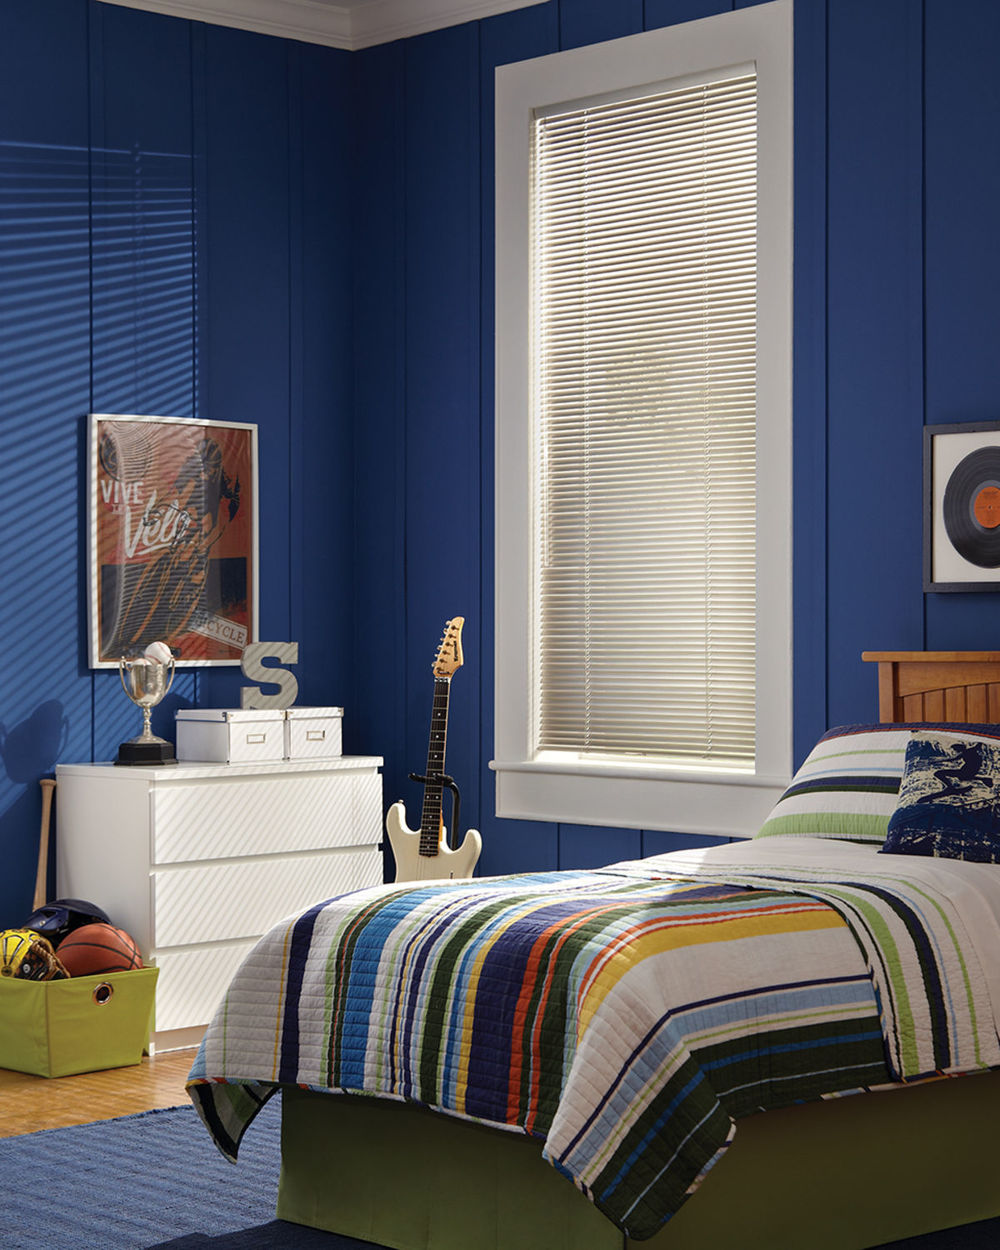 <p><strong></strong>Decor Blinds